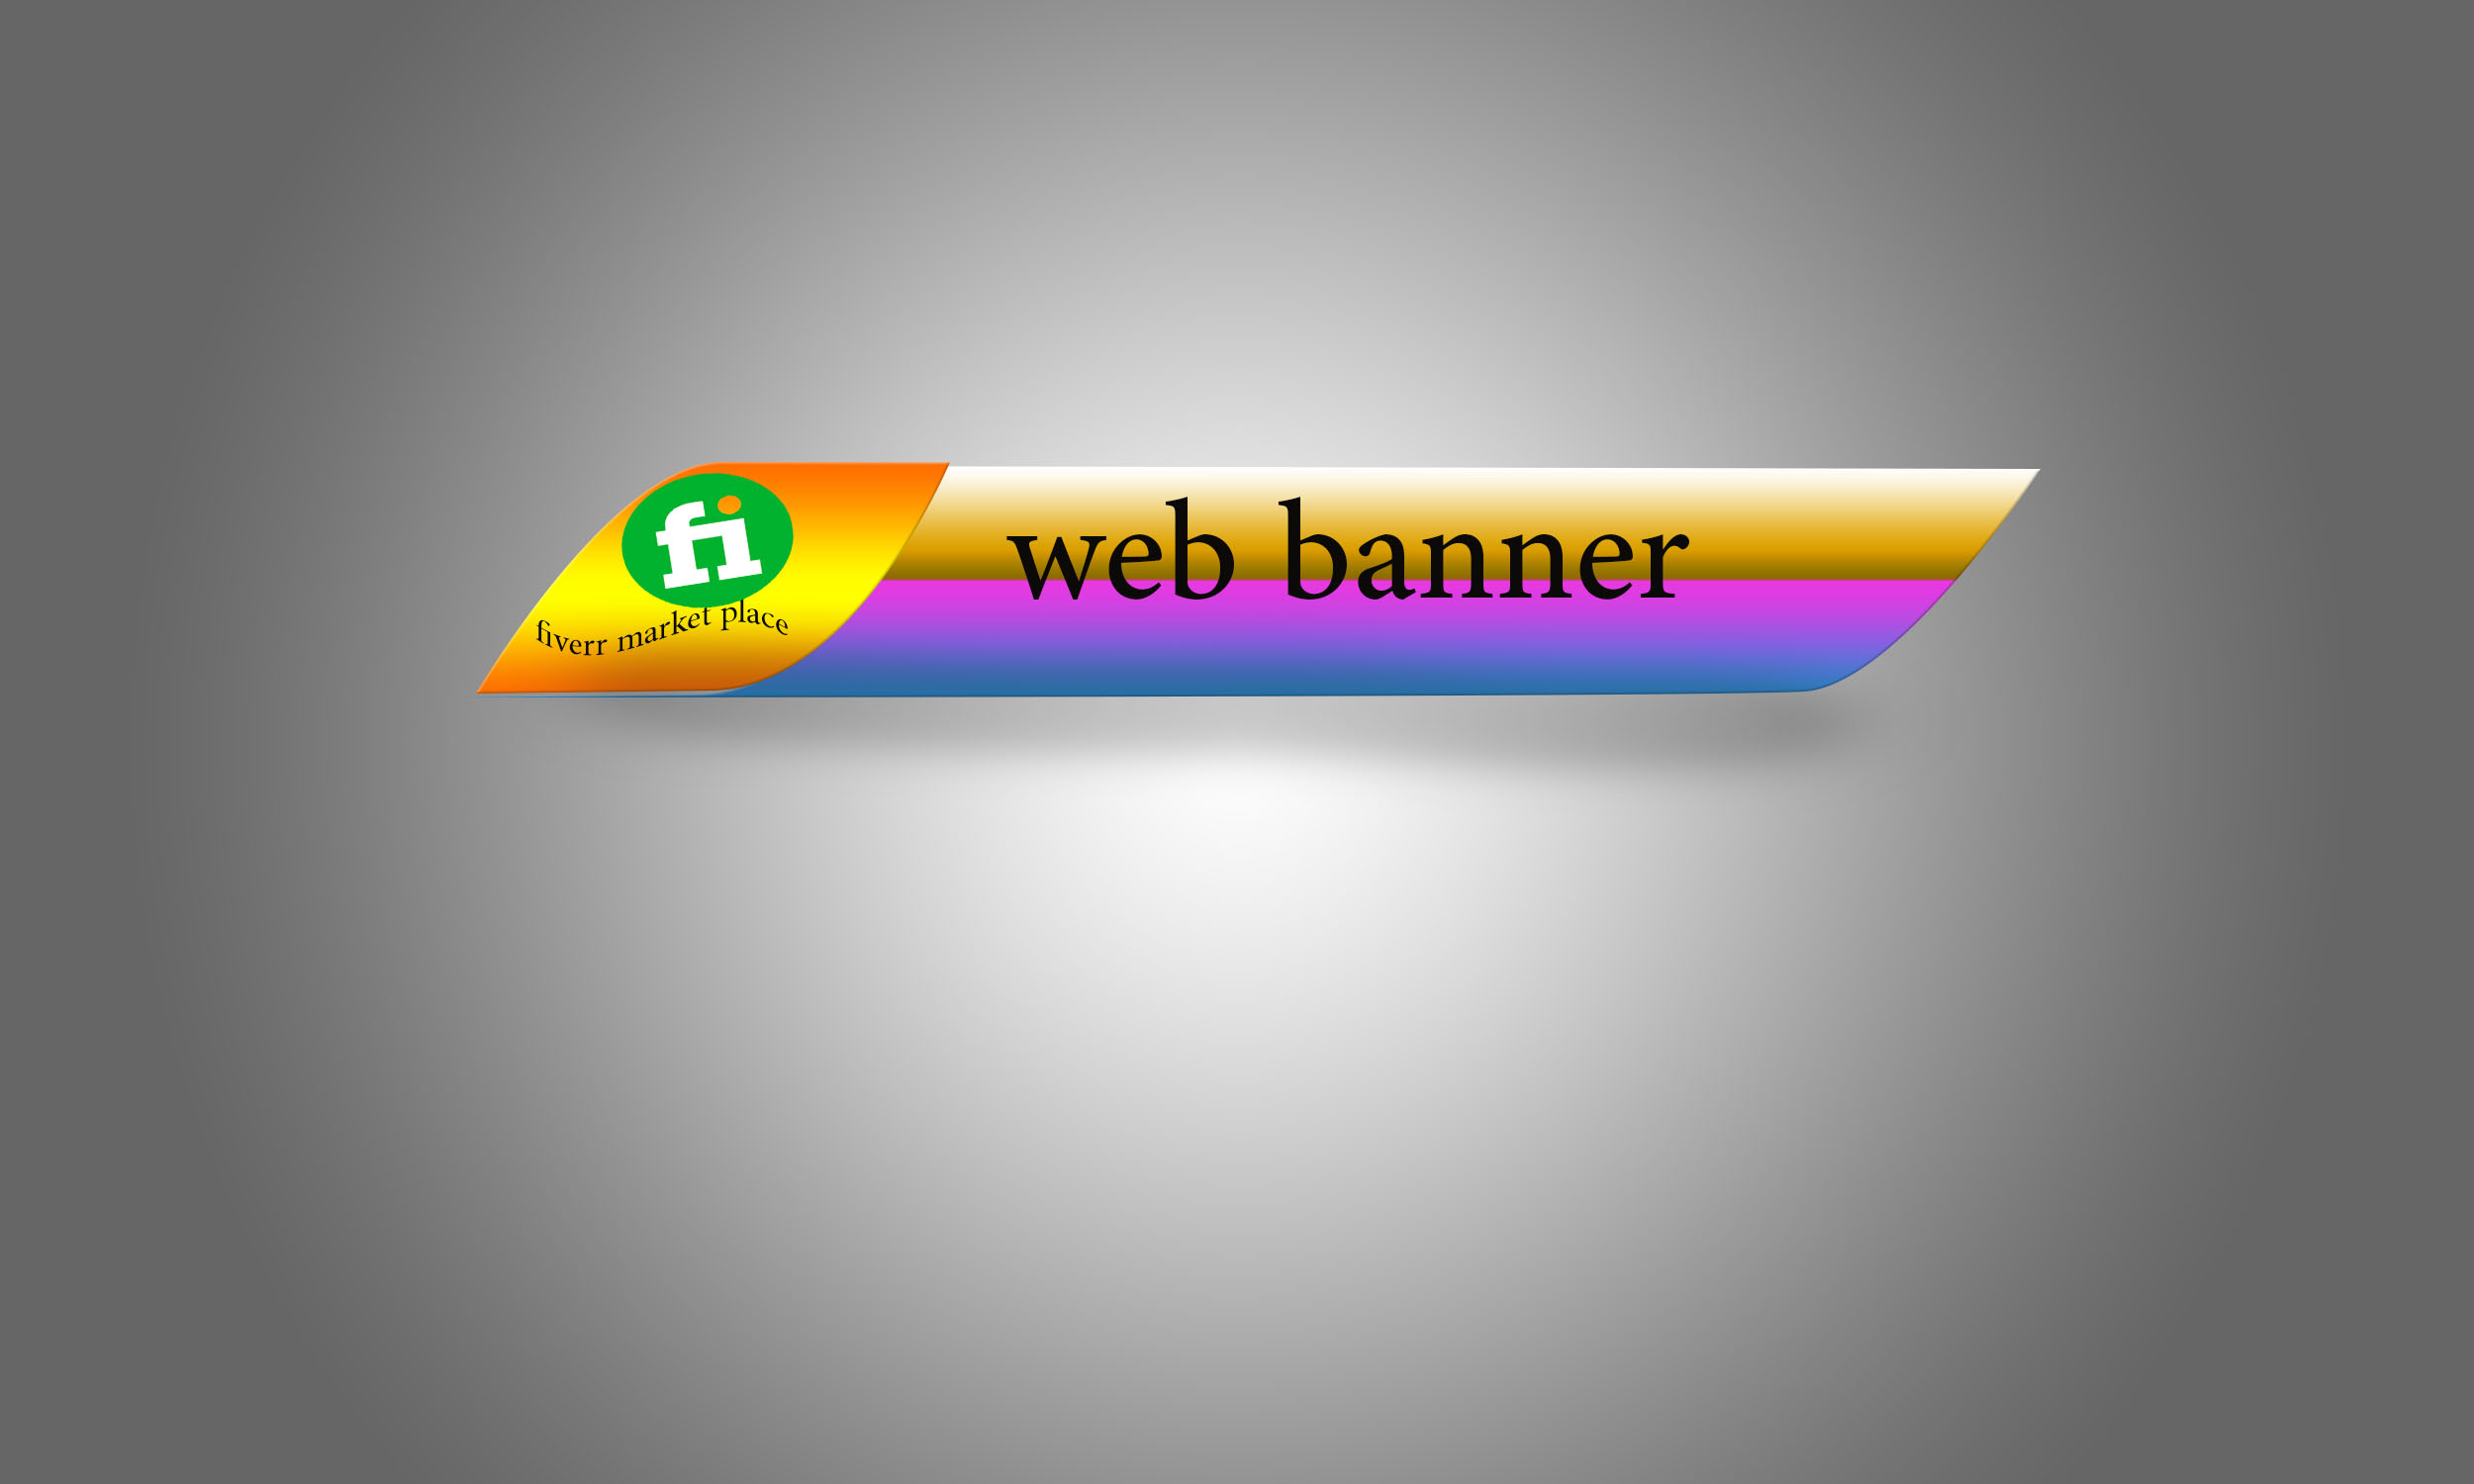 build an AWESOMEweb banners for your website or business